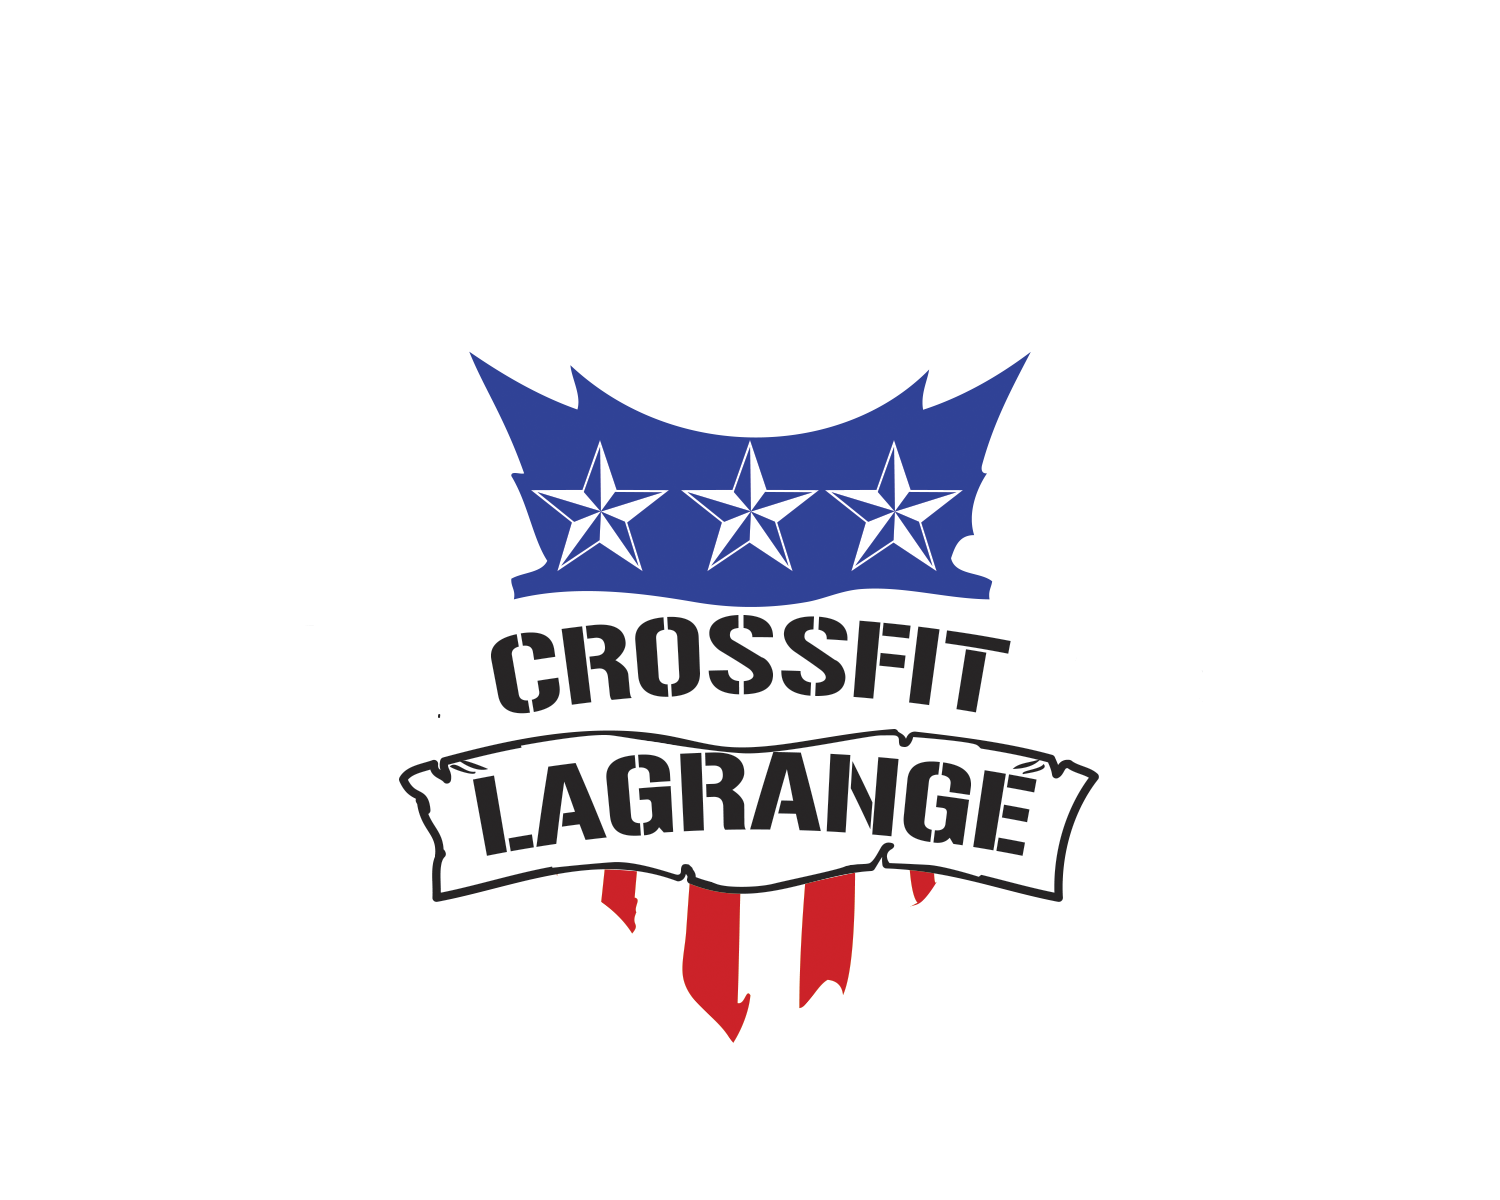 Crossfit LaGrange